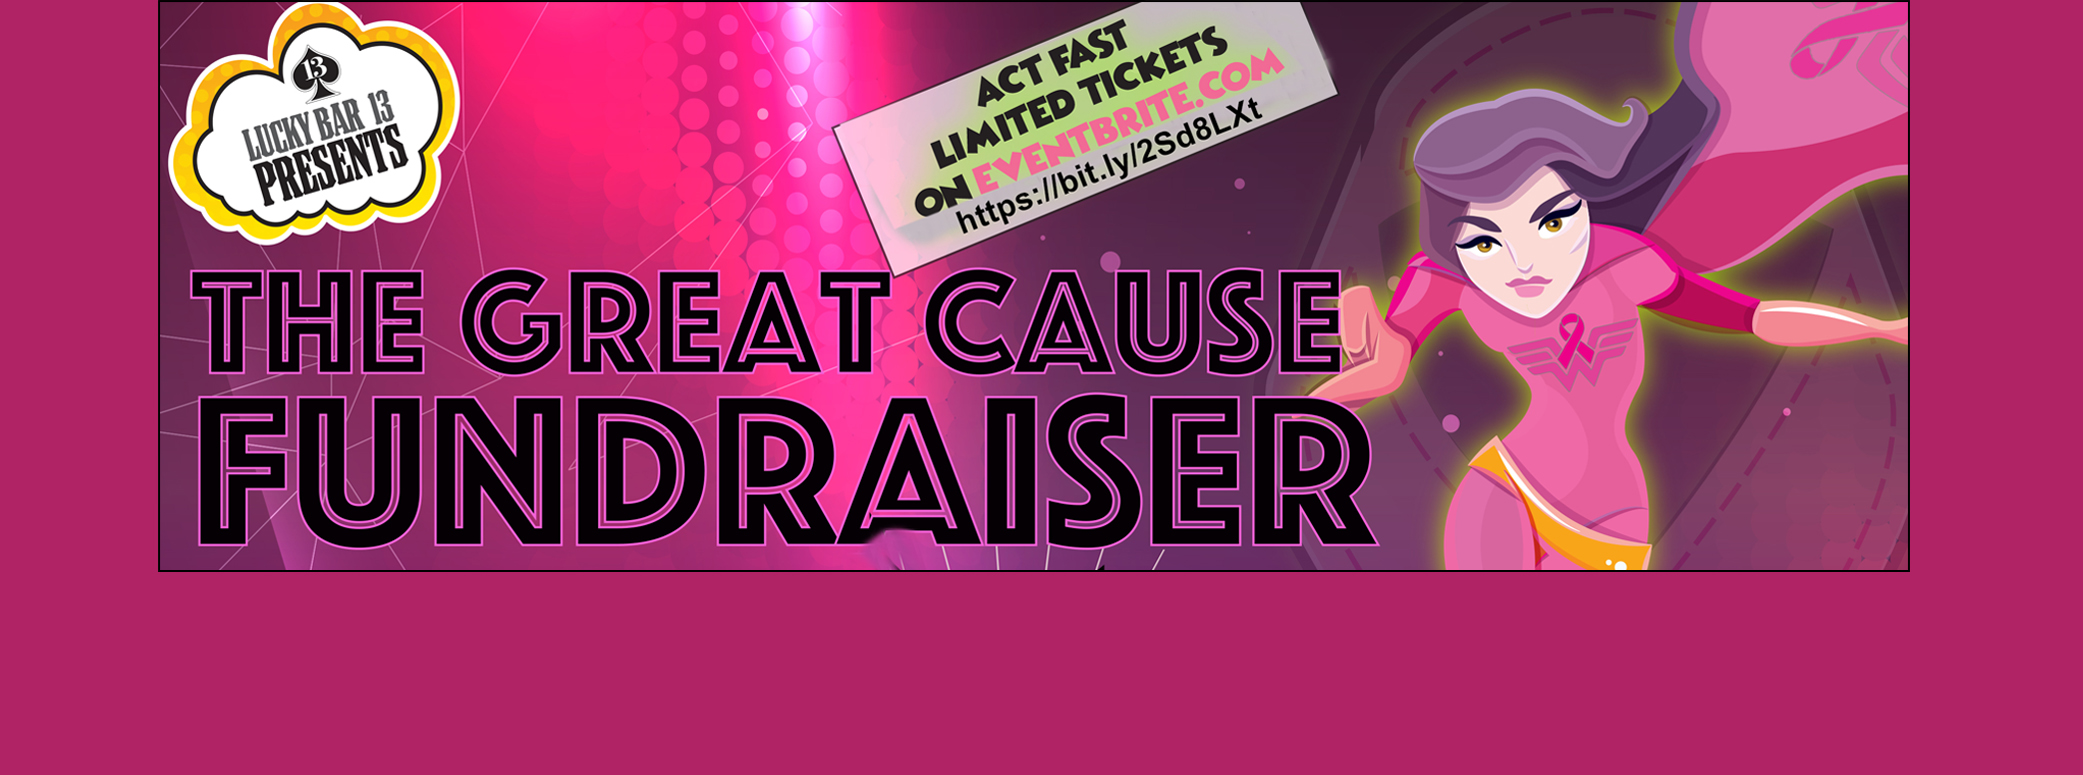 The Great Cause Fundraiser